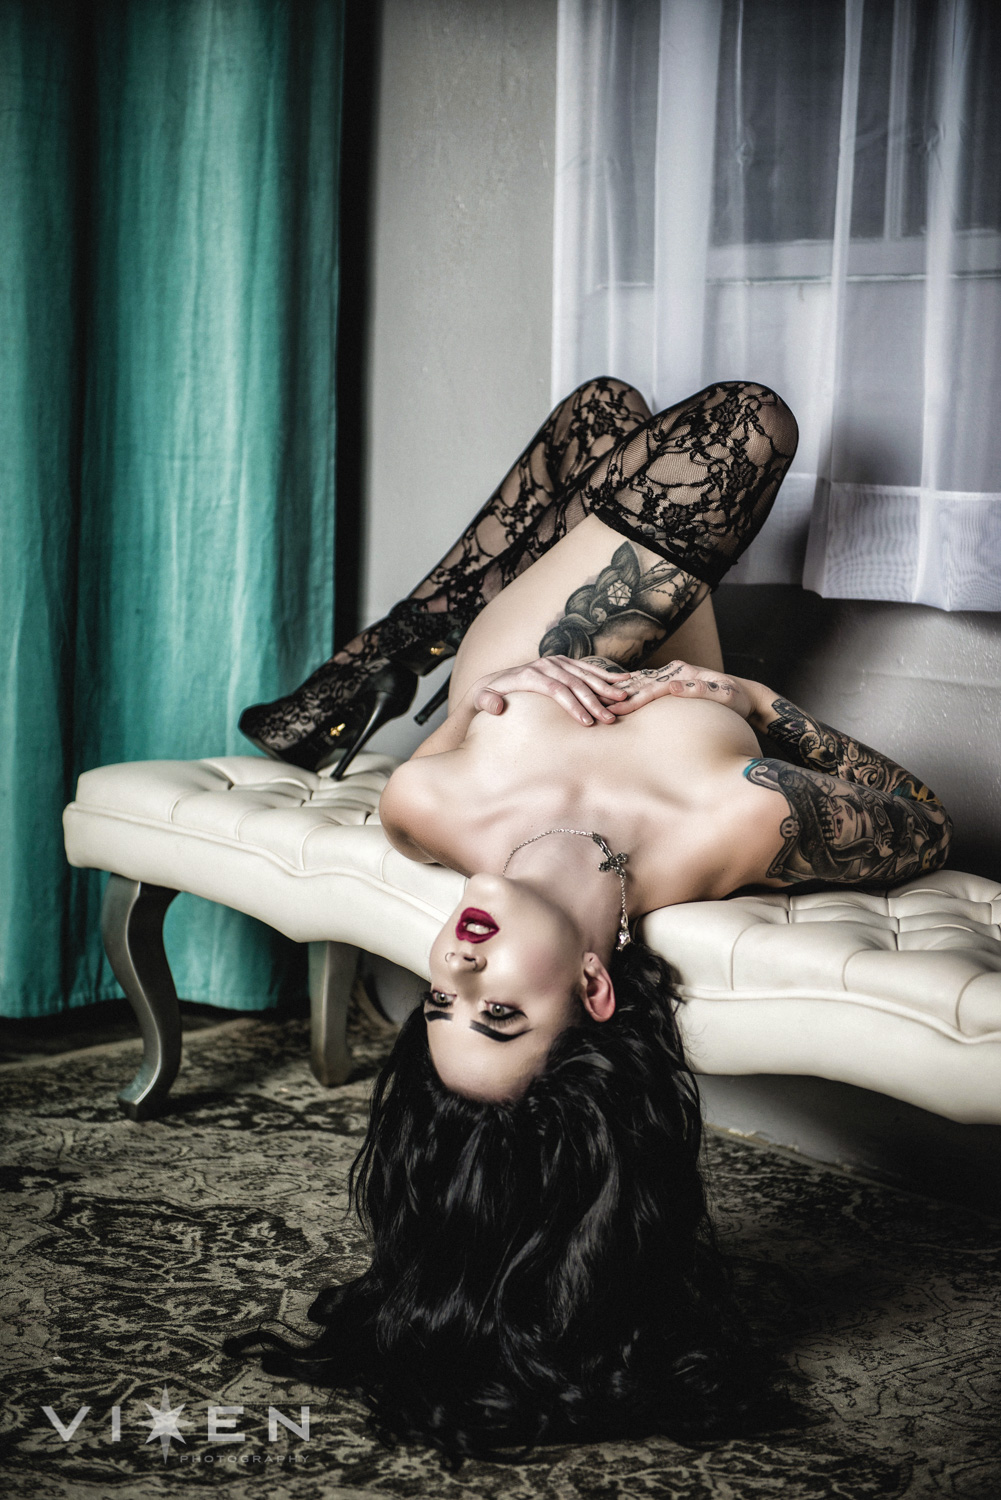 Naked goth pinups, indian pussy ass butt booty